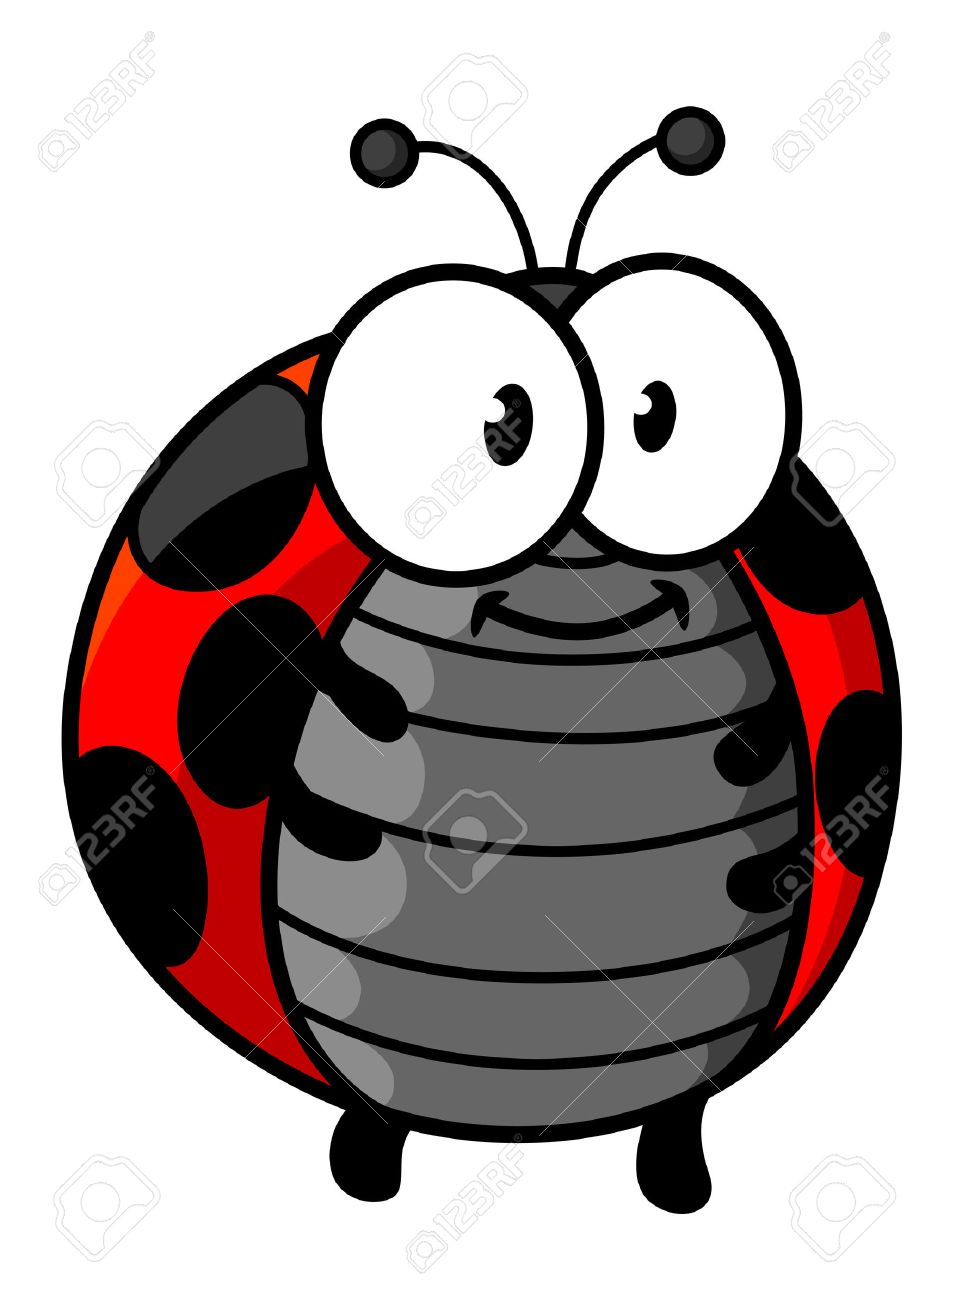 Ladybug Cartoon Character Showing Cute Smiling Red And Black Spotted Bug  With Little Legs, Funny